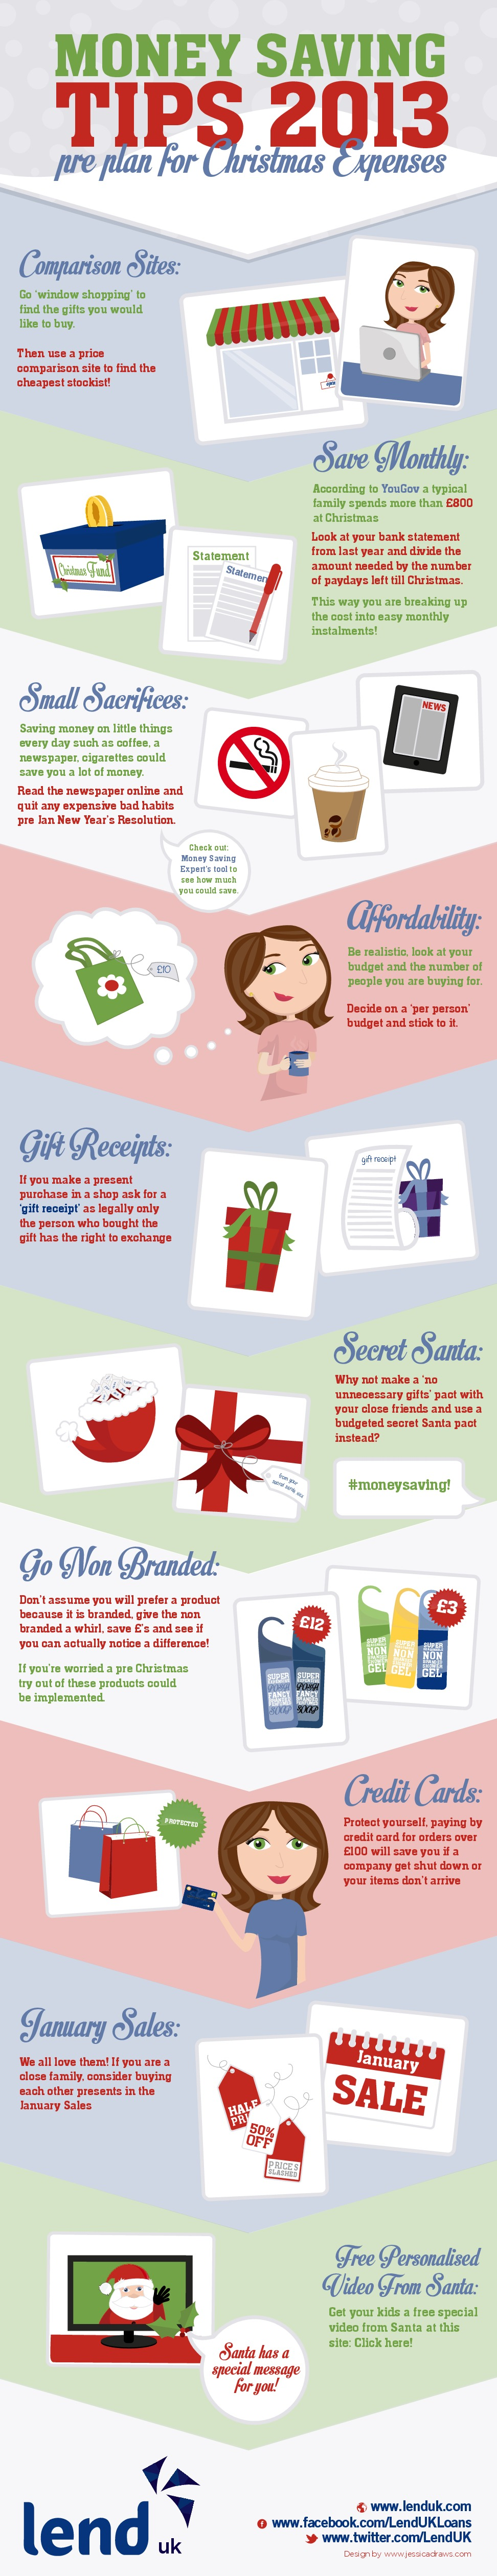 money-saving-tips-2013--pre-plan-for-christmas-expenses_5233109158f24